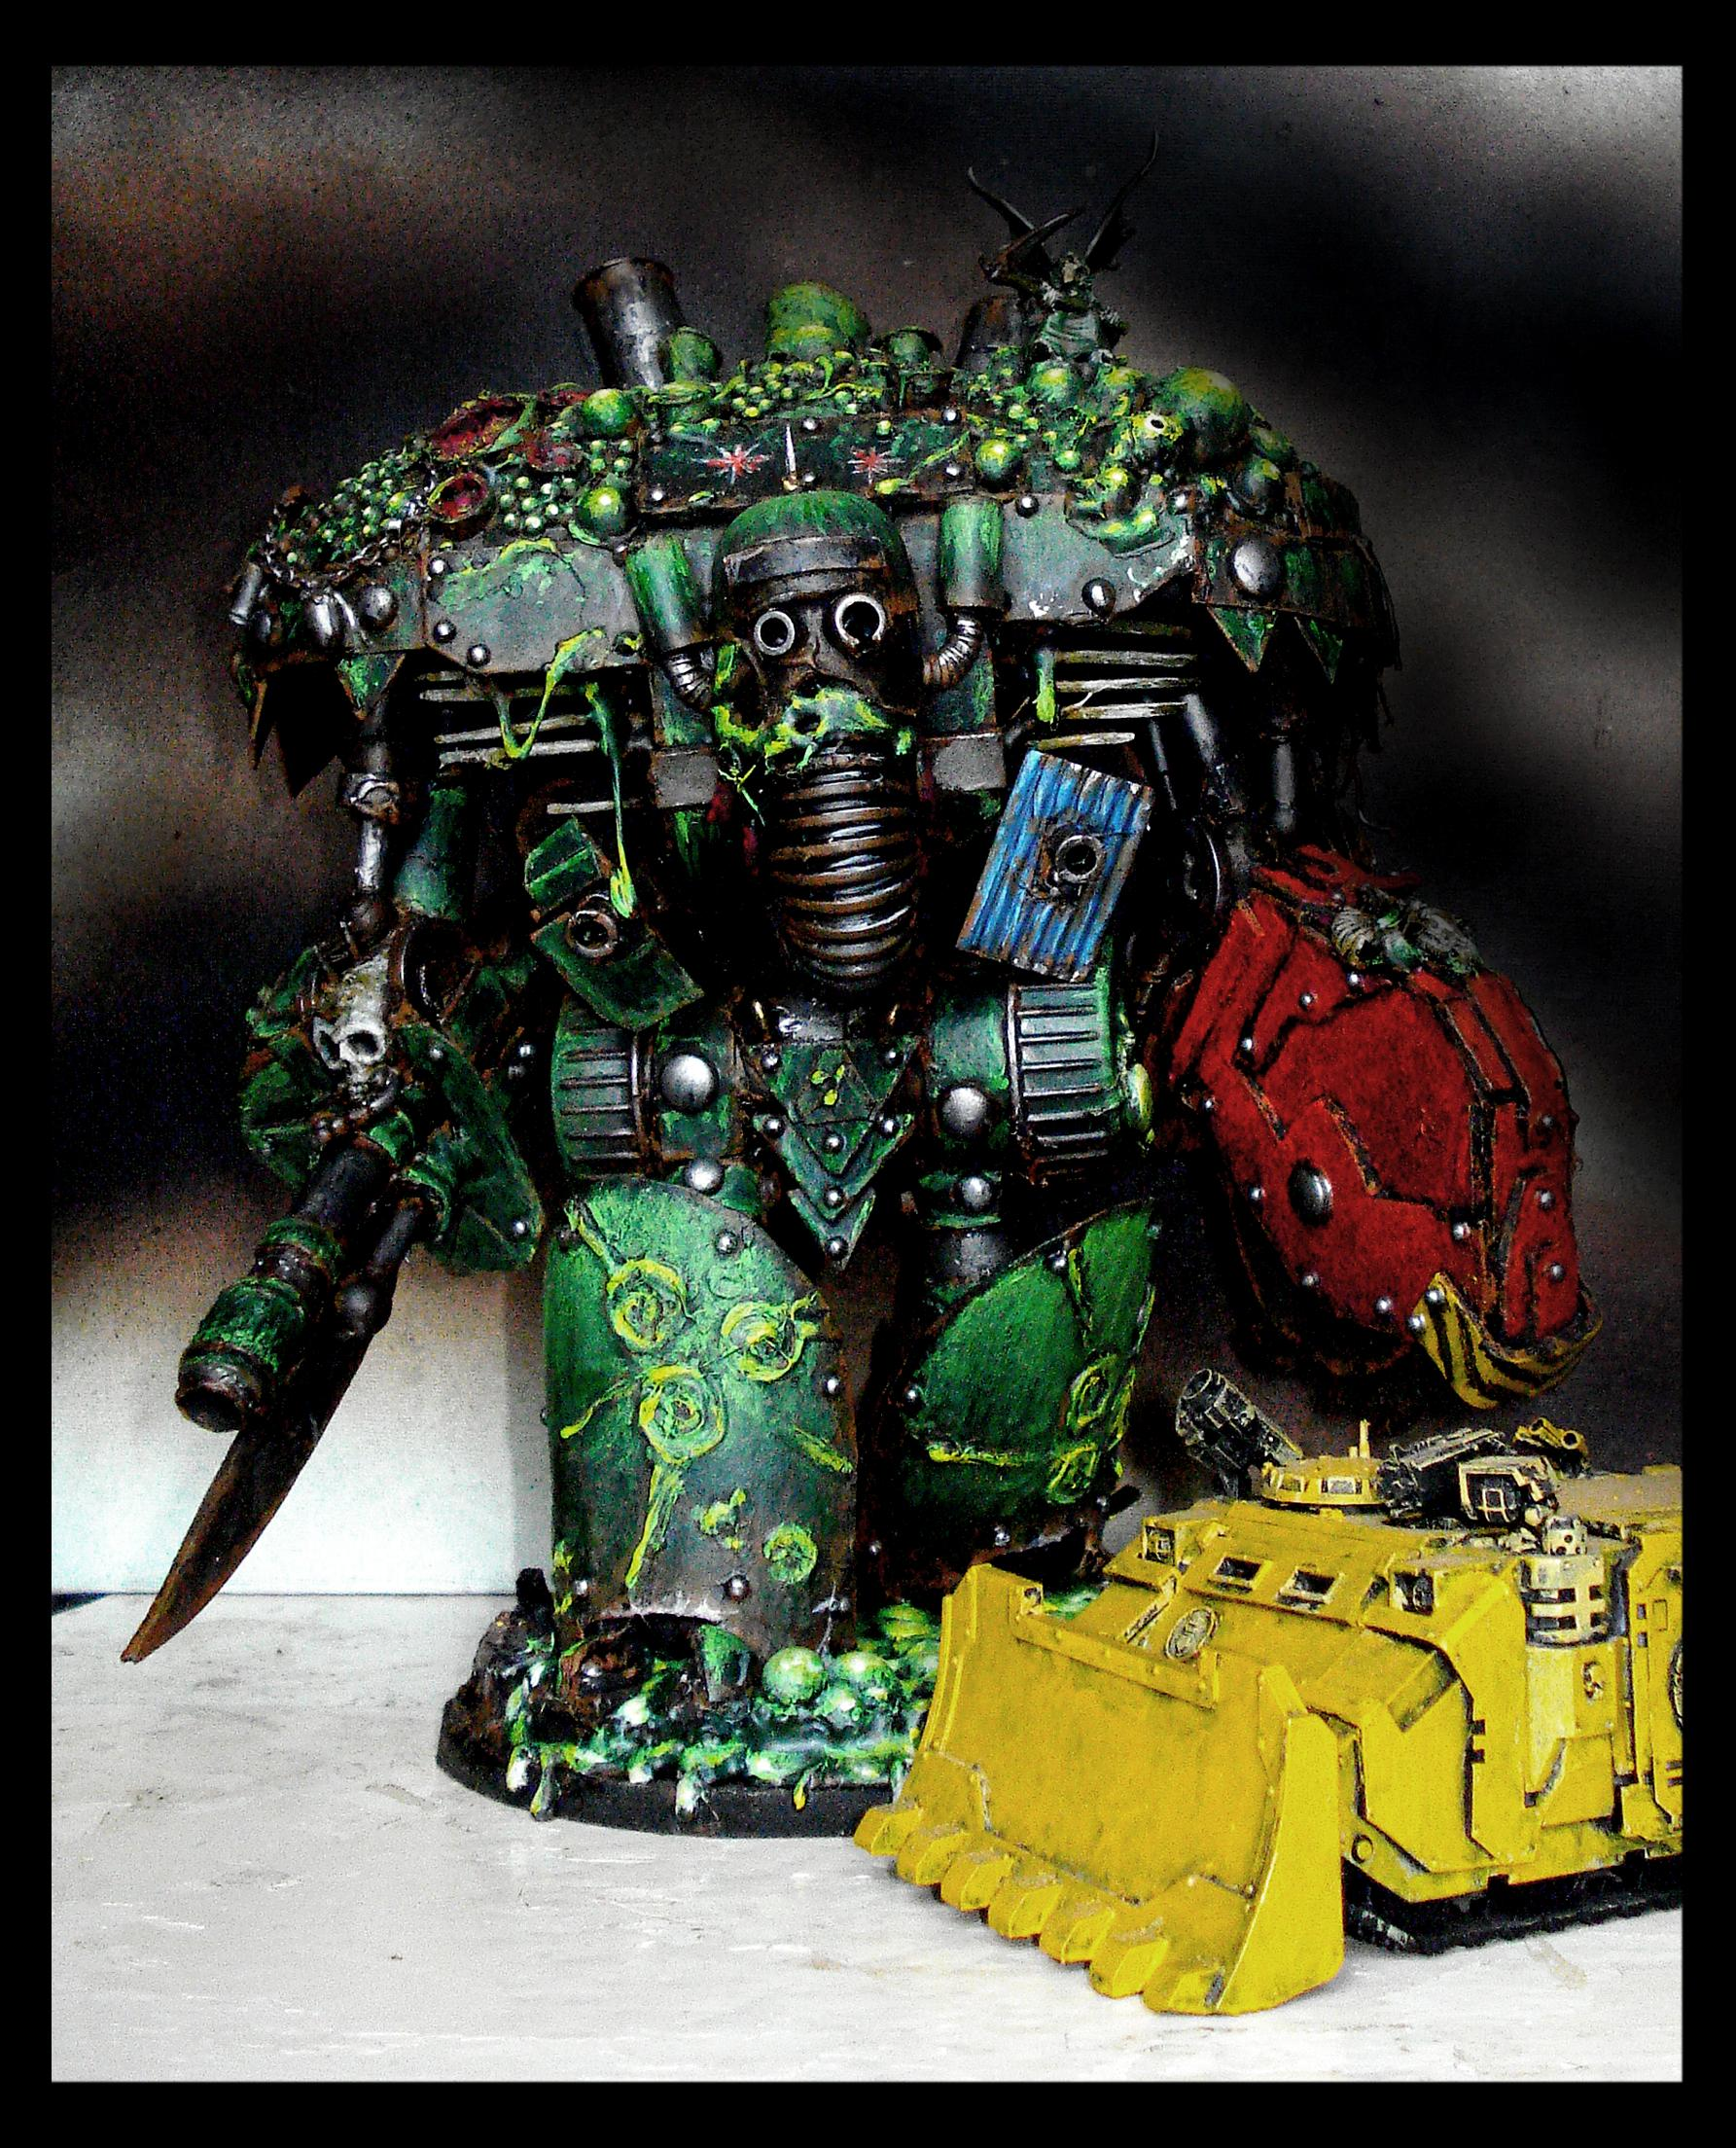 Built, Chaos, Knights, Nurgle, Plague, Recycled, Scratch, Scratch Build, Titan, Warhammer 40,000, Warhammer Fantasy